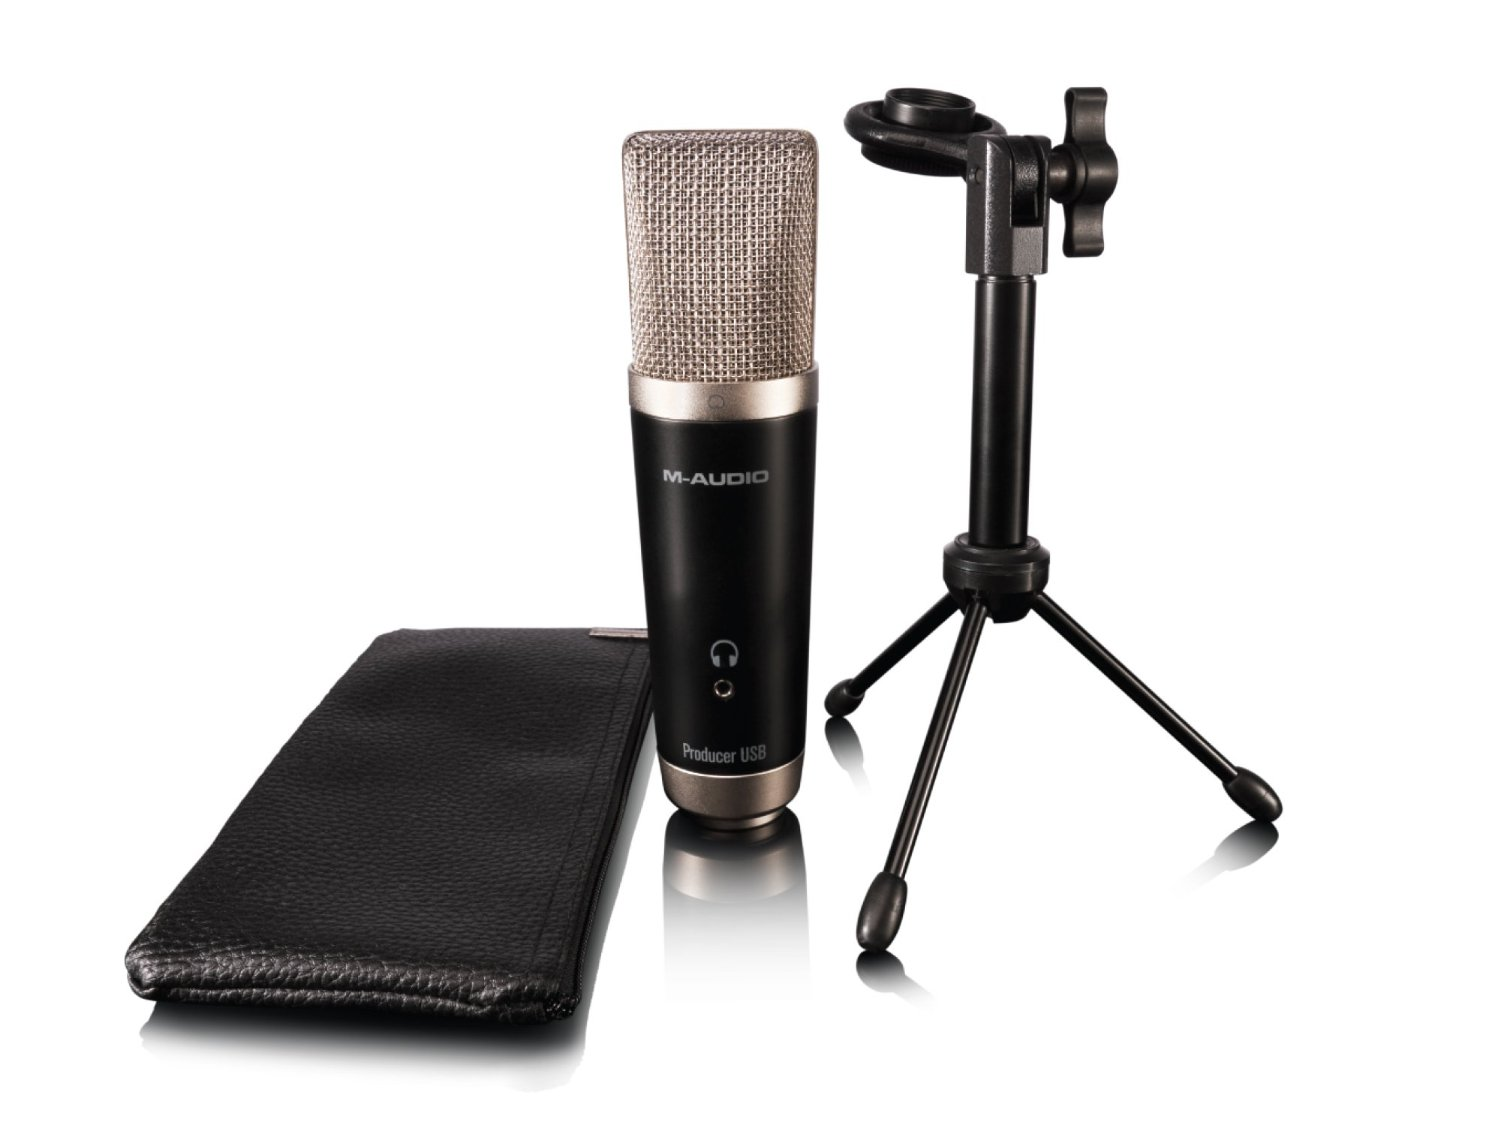 Best Budget Microphones - Get a Top 20 Podcast Microphone for Under $200 - M-Audio USB Condenser Microphone